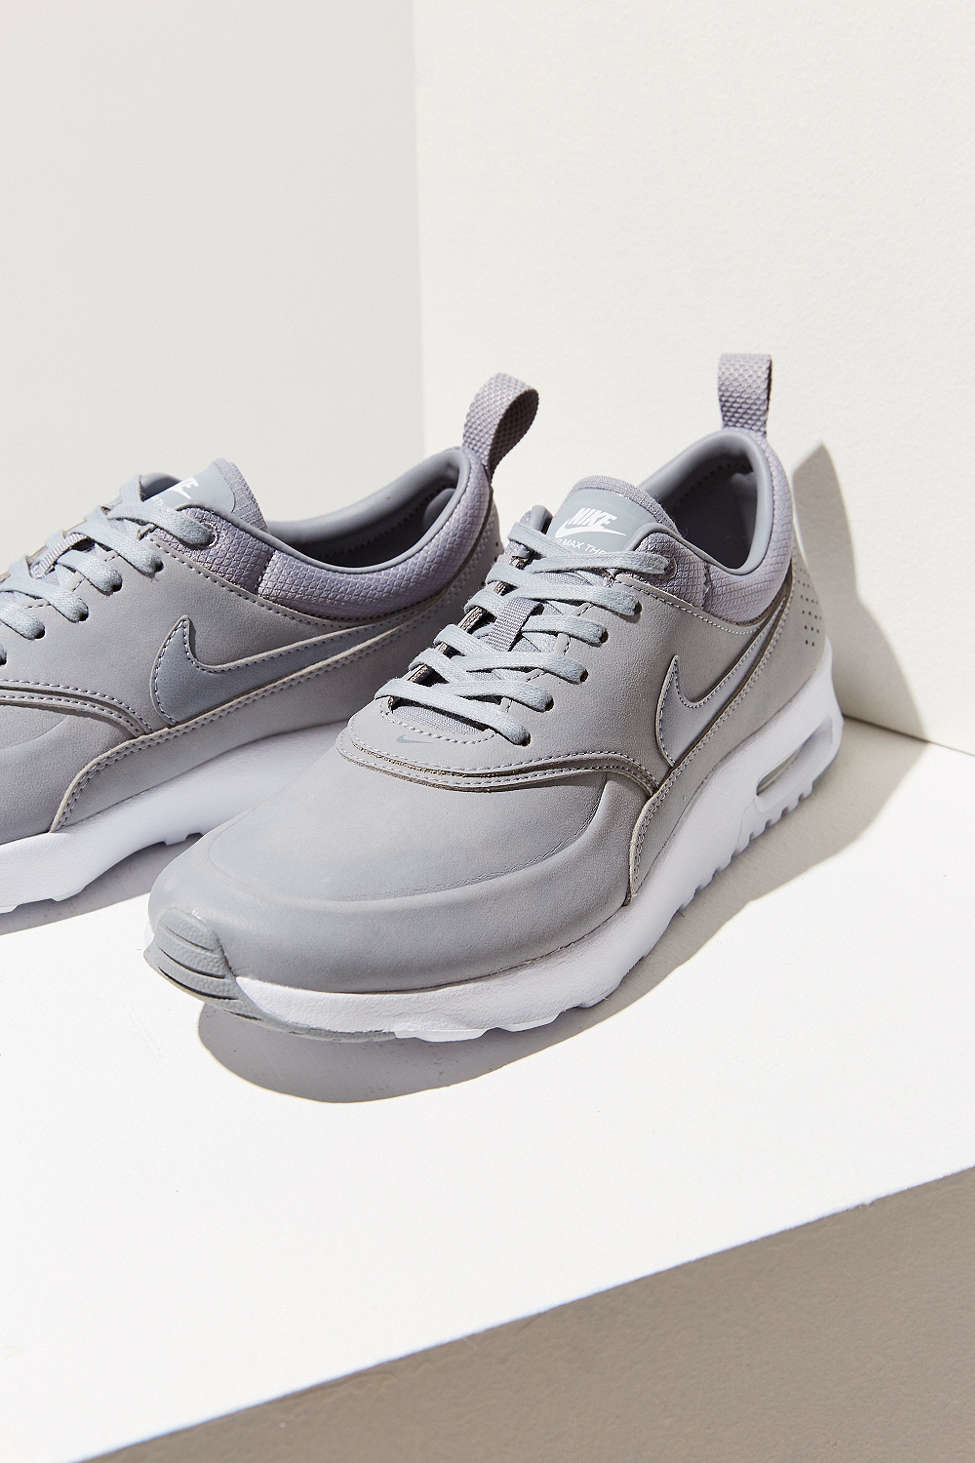 nike air max thea premium sneaker in gray lyst. Black Bedroom Furniture Sets. Home Design Ideas